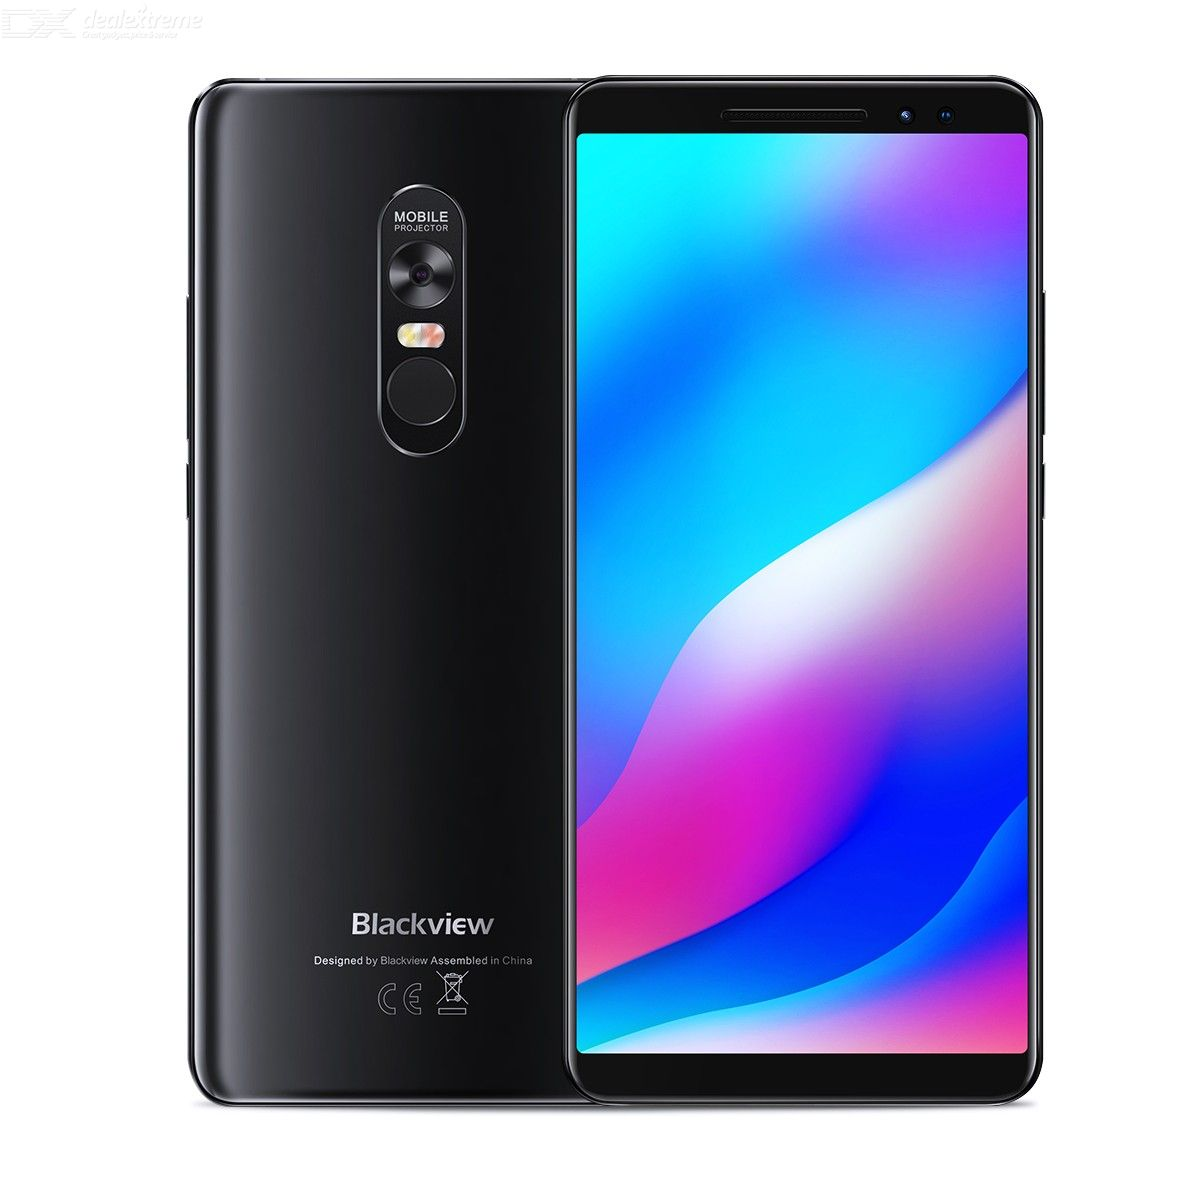 Blackview Max1 6.01 inch  6GB RAM 64GB ROM MTK6763T Octa-Core Smartphone Support Projection Playback Movie Function - Black